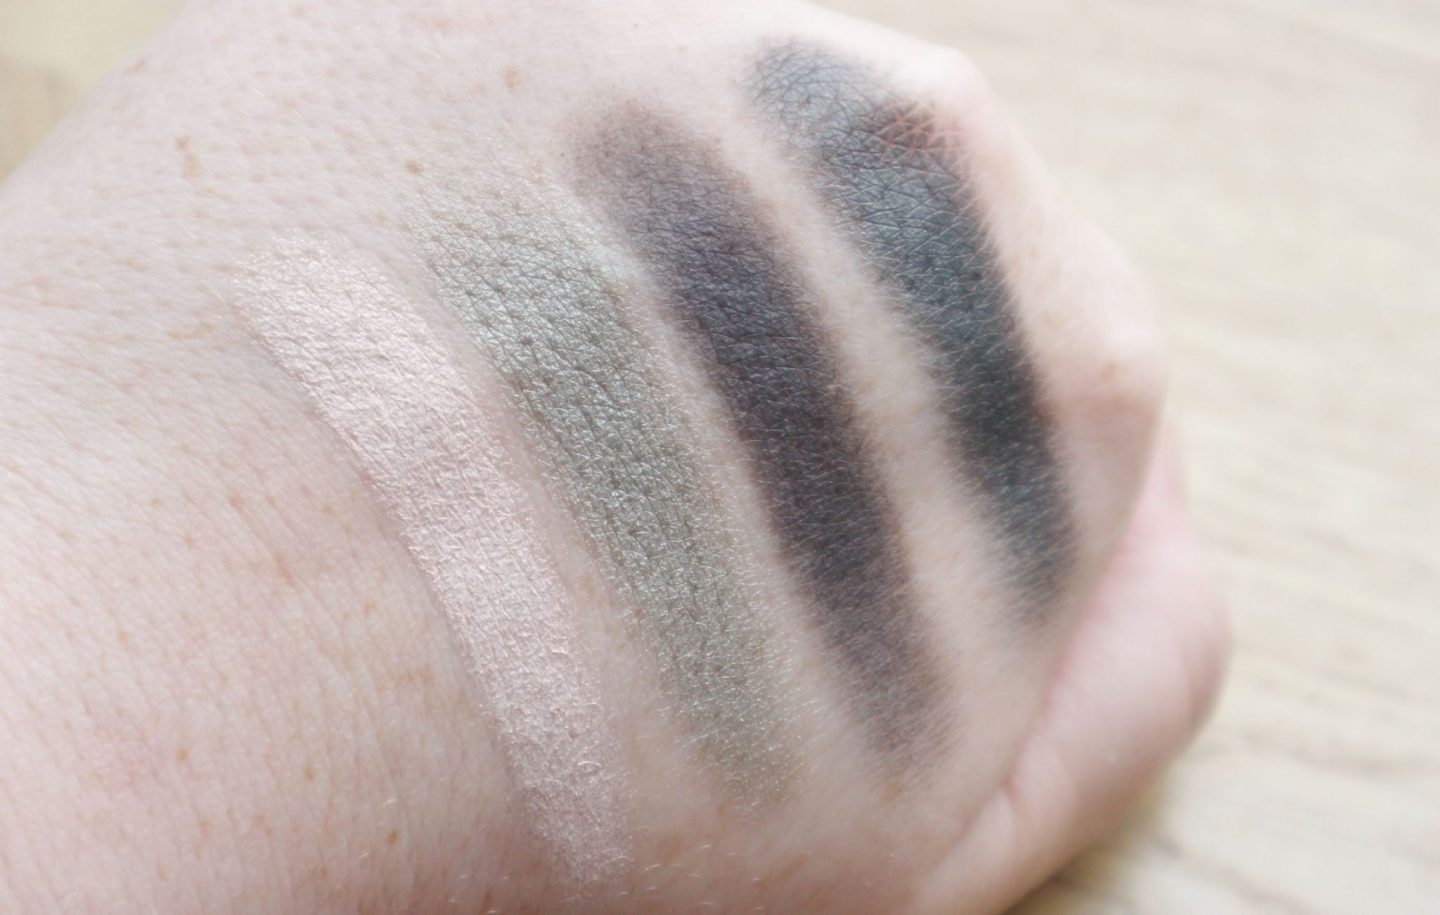 clarins 4-Colour Eyeshadow Palette in 06 Forest swatches